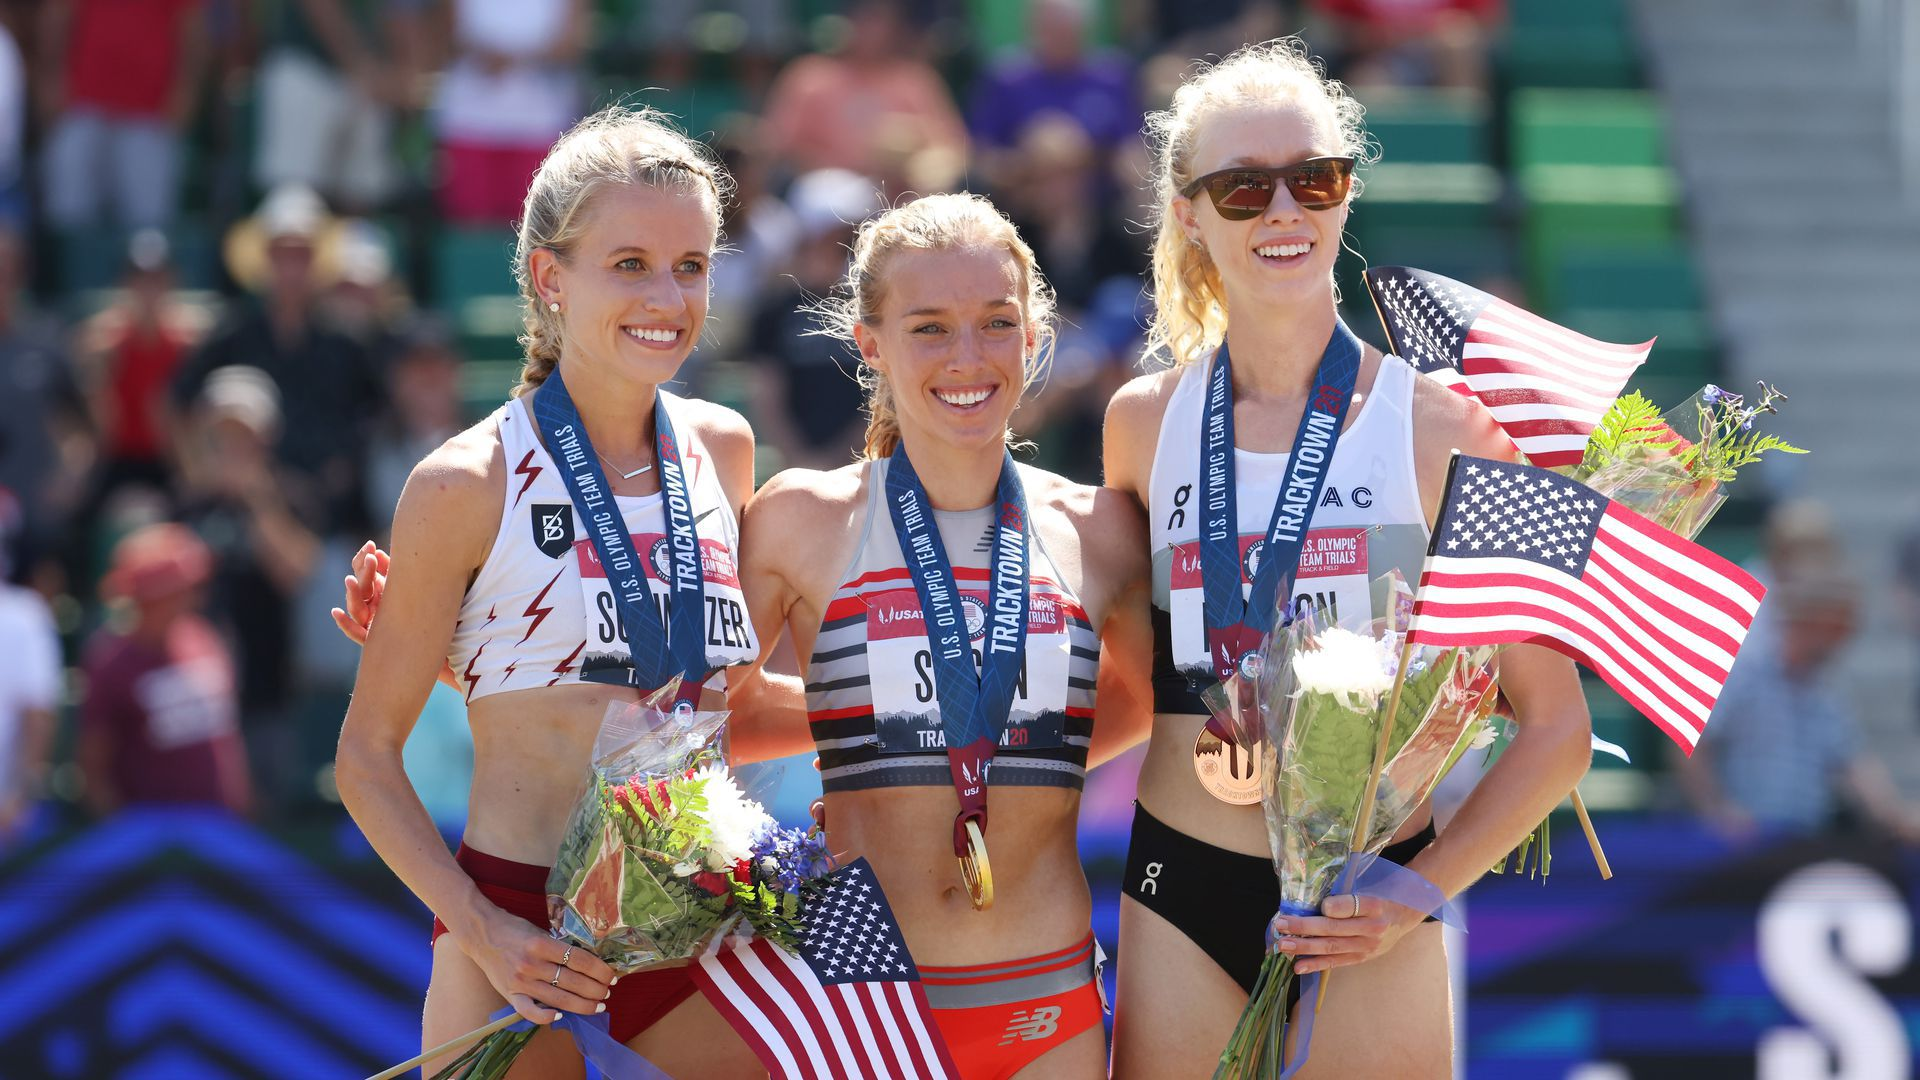 Karissa Schweizer, Emily Sisson and Alicia Monson, pose for a photo with their medals after the Women's 10,000 Meters Final at Hayward Field in Eugene, Oregon.